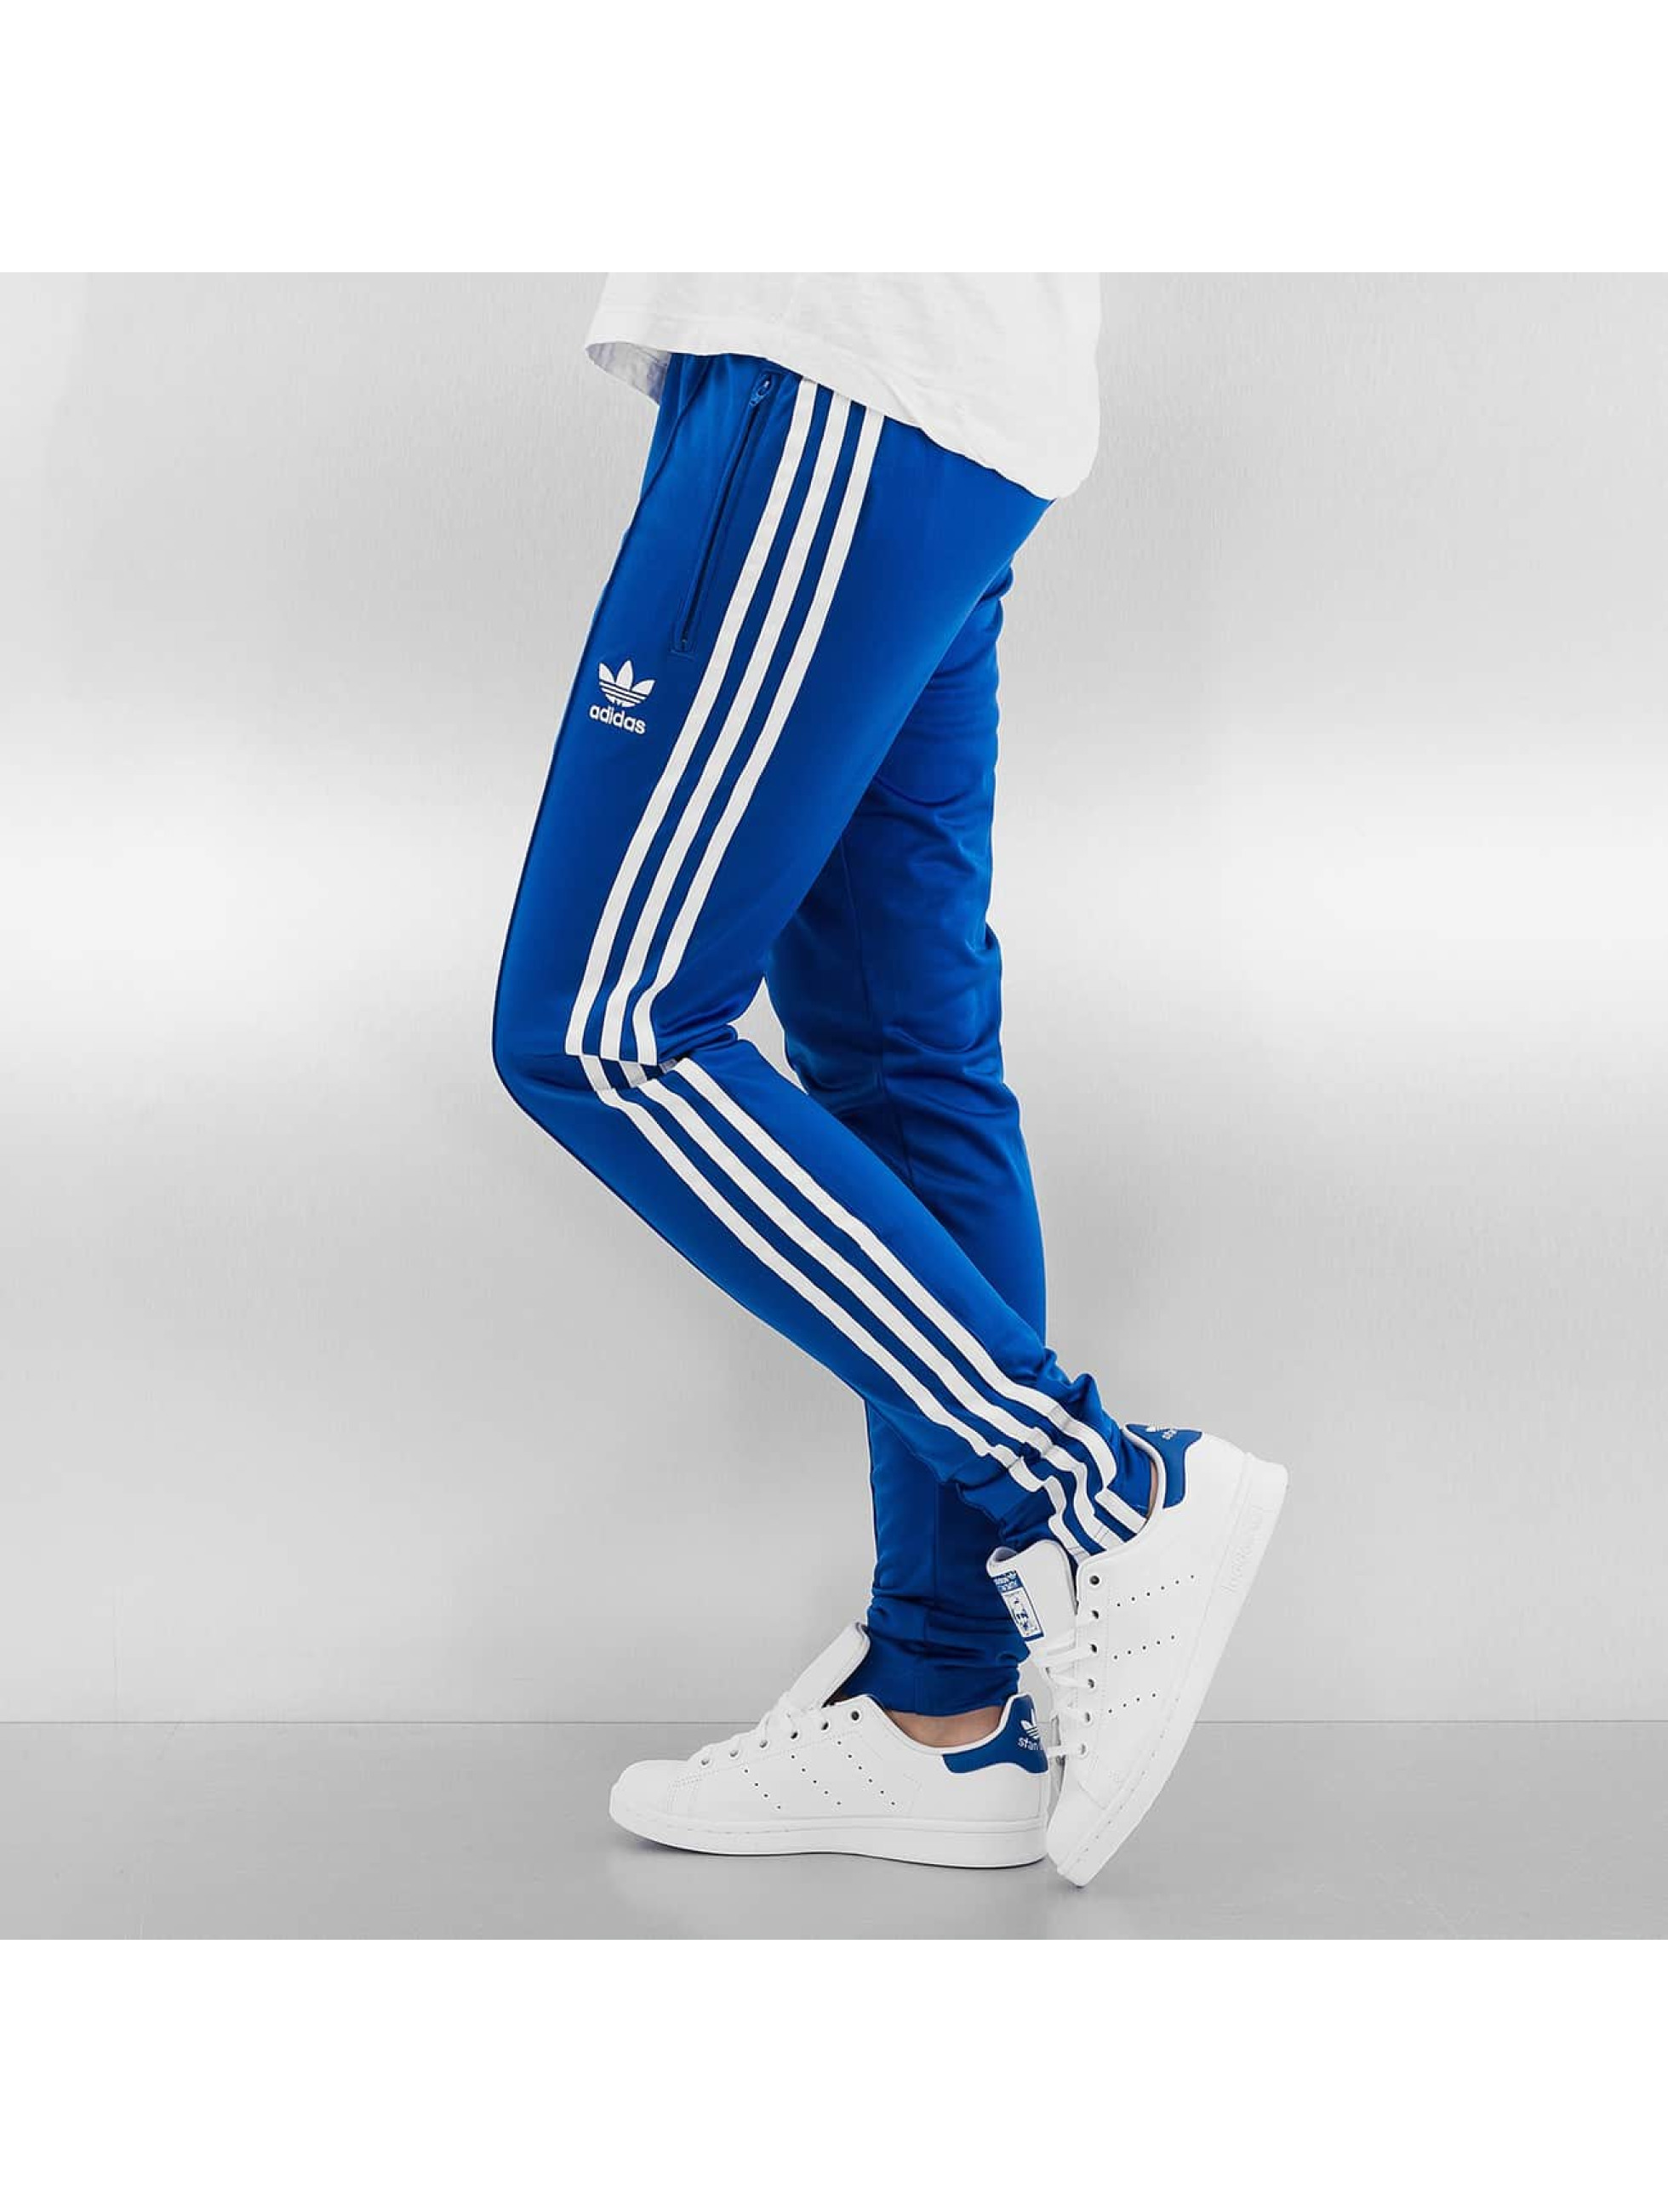 adidas jogginghose damen blau adidas neo online shop. Black Bedroom Furniture Sets. Home Design Ideas